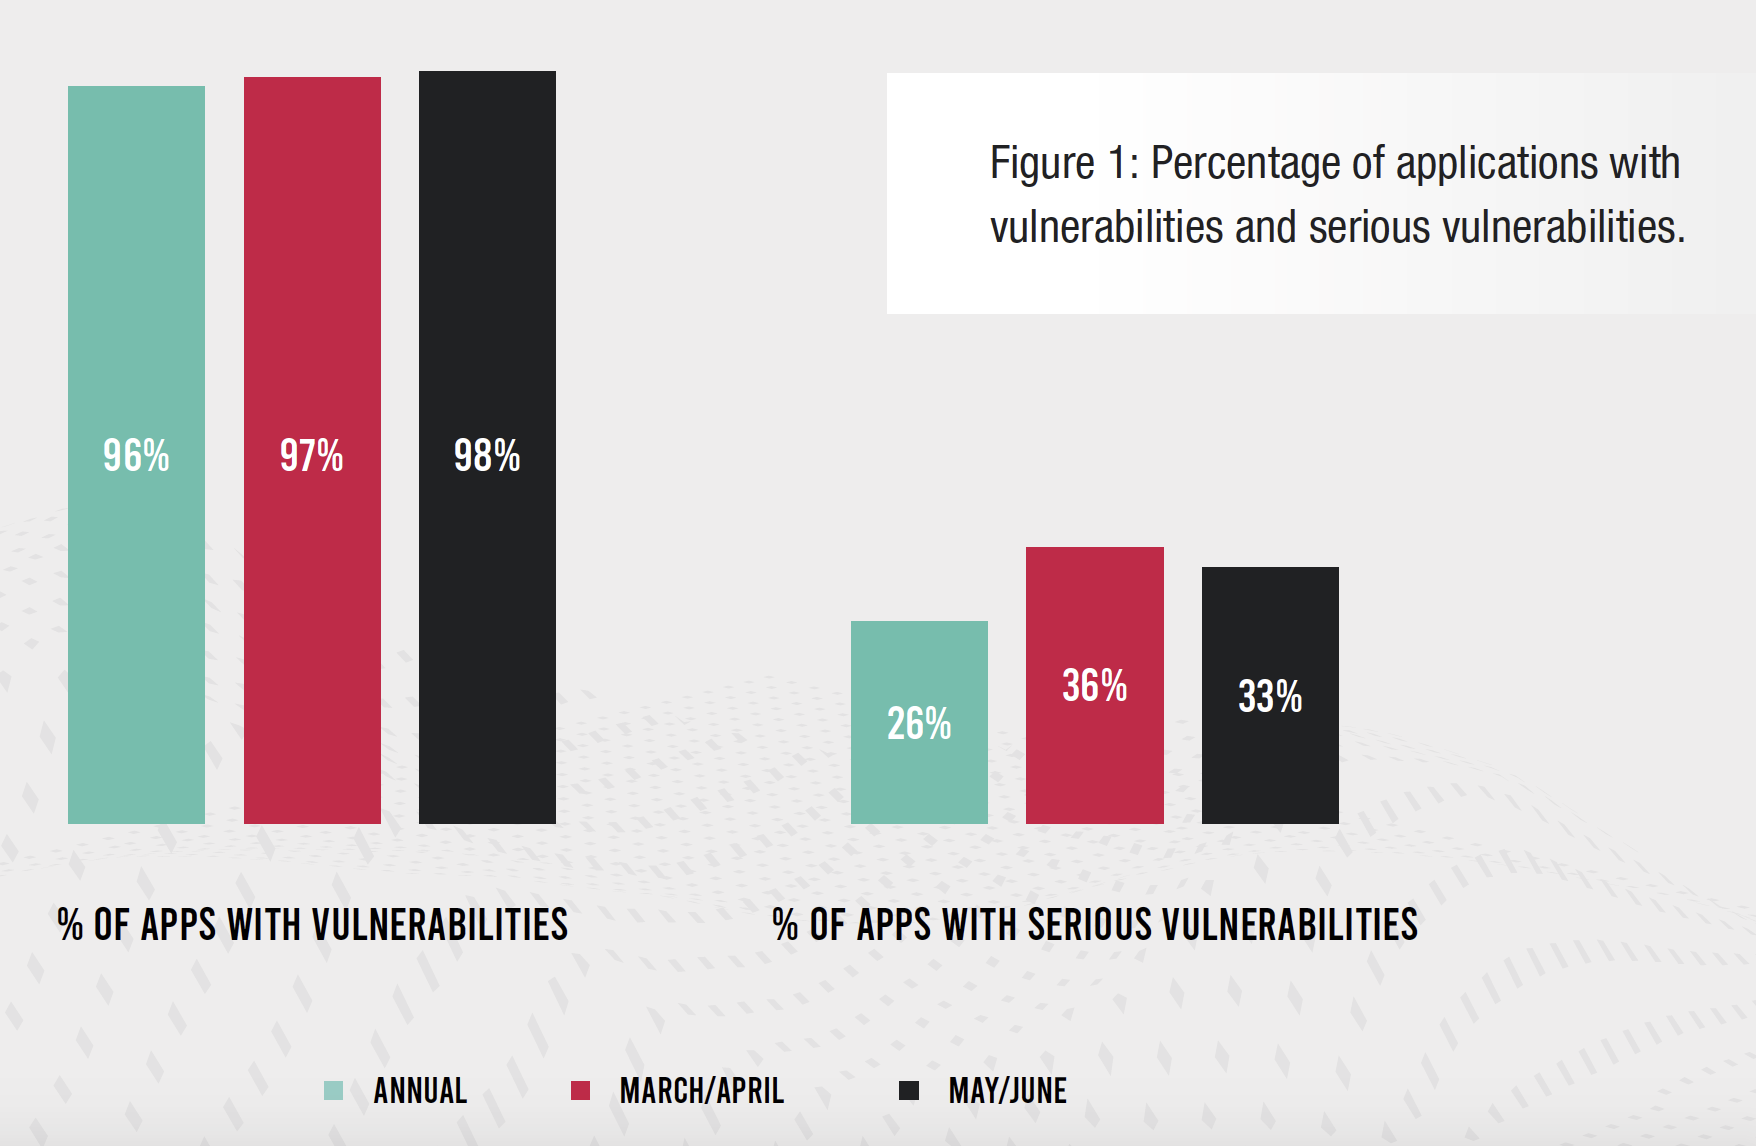 Figure 1: Percentage of applications with vulnerabilities and serious vulnerabilities.